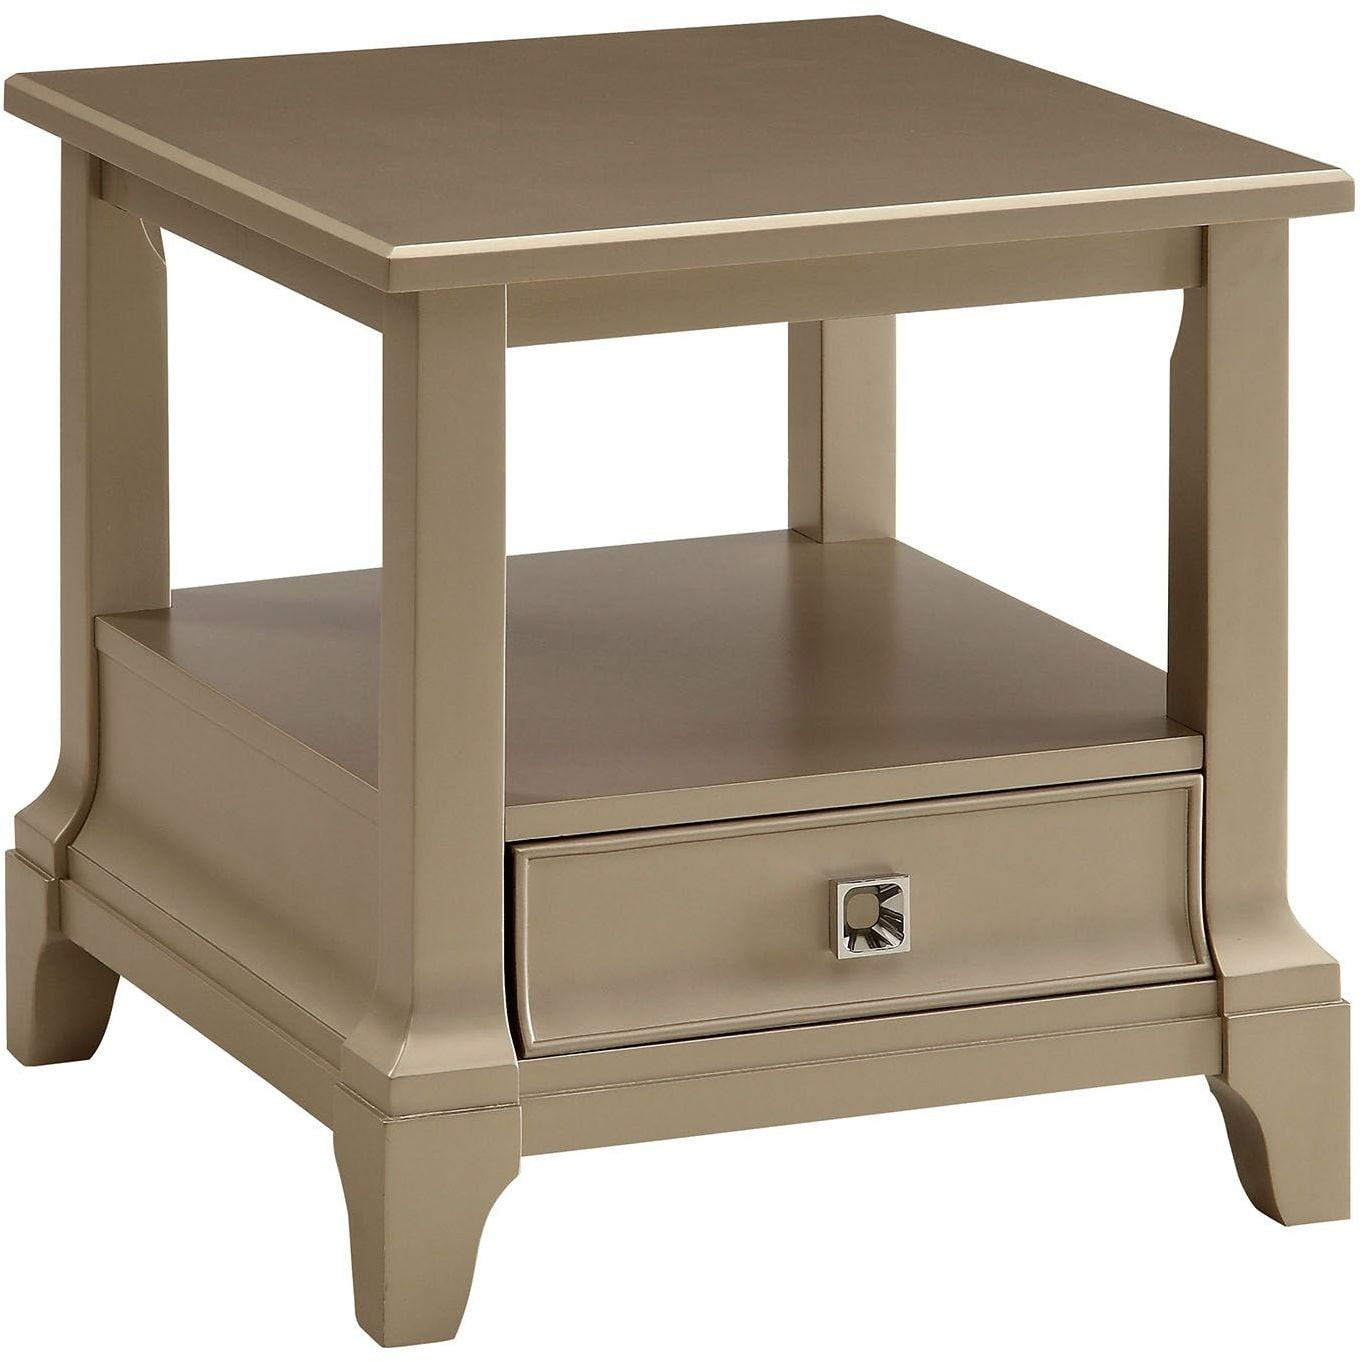 Letitia Silver End Table From Furniture Of America Coleman Furniture # Muebles Luan Arbo